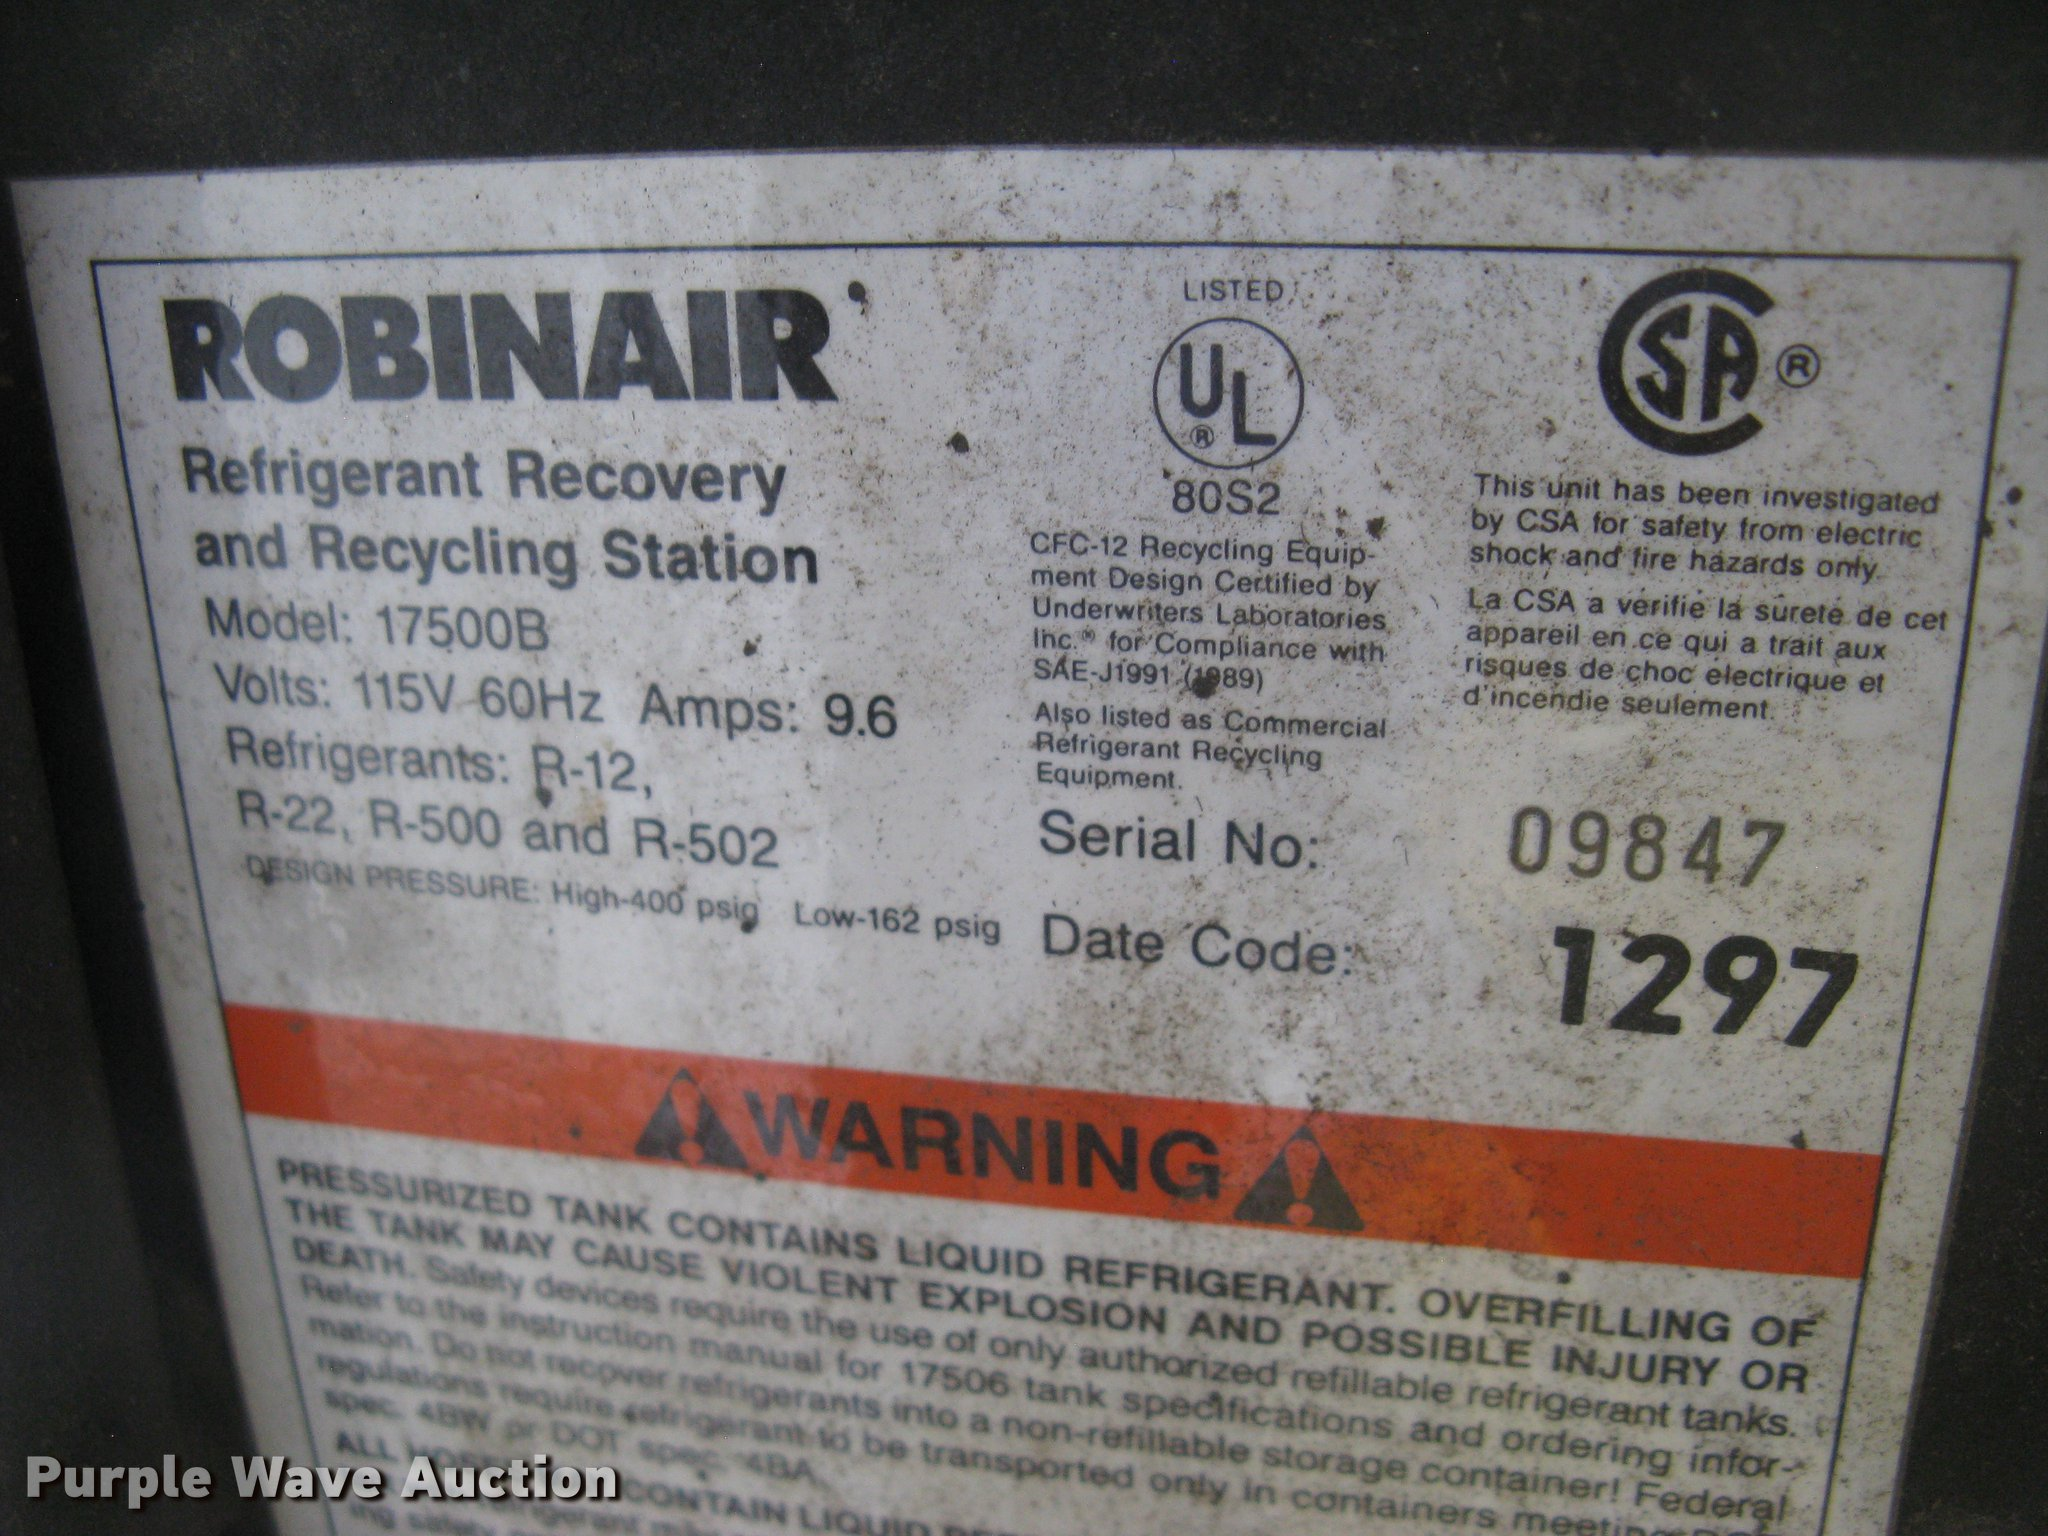 Robinair 17500b Refrigerant Recovery And Recycling System Ac Unit Wiring Diagram Full Size In New Window